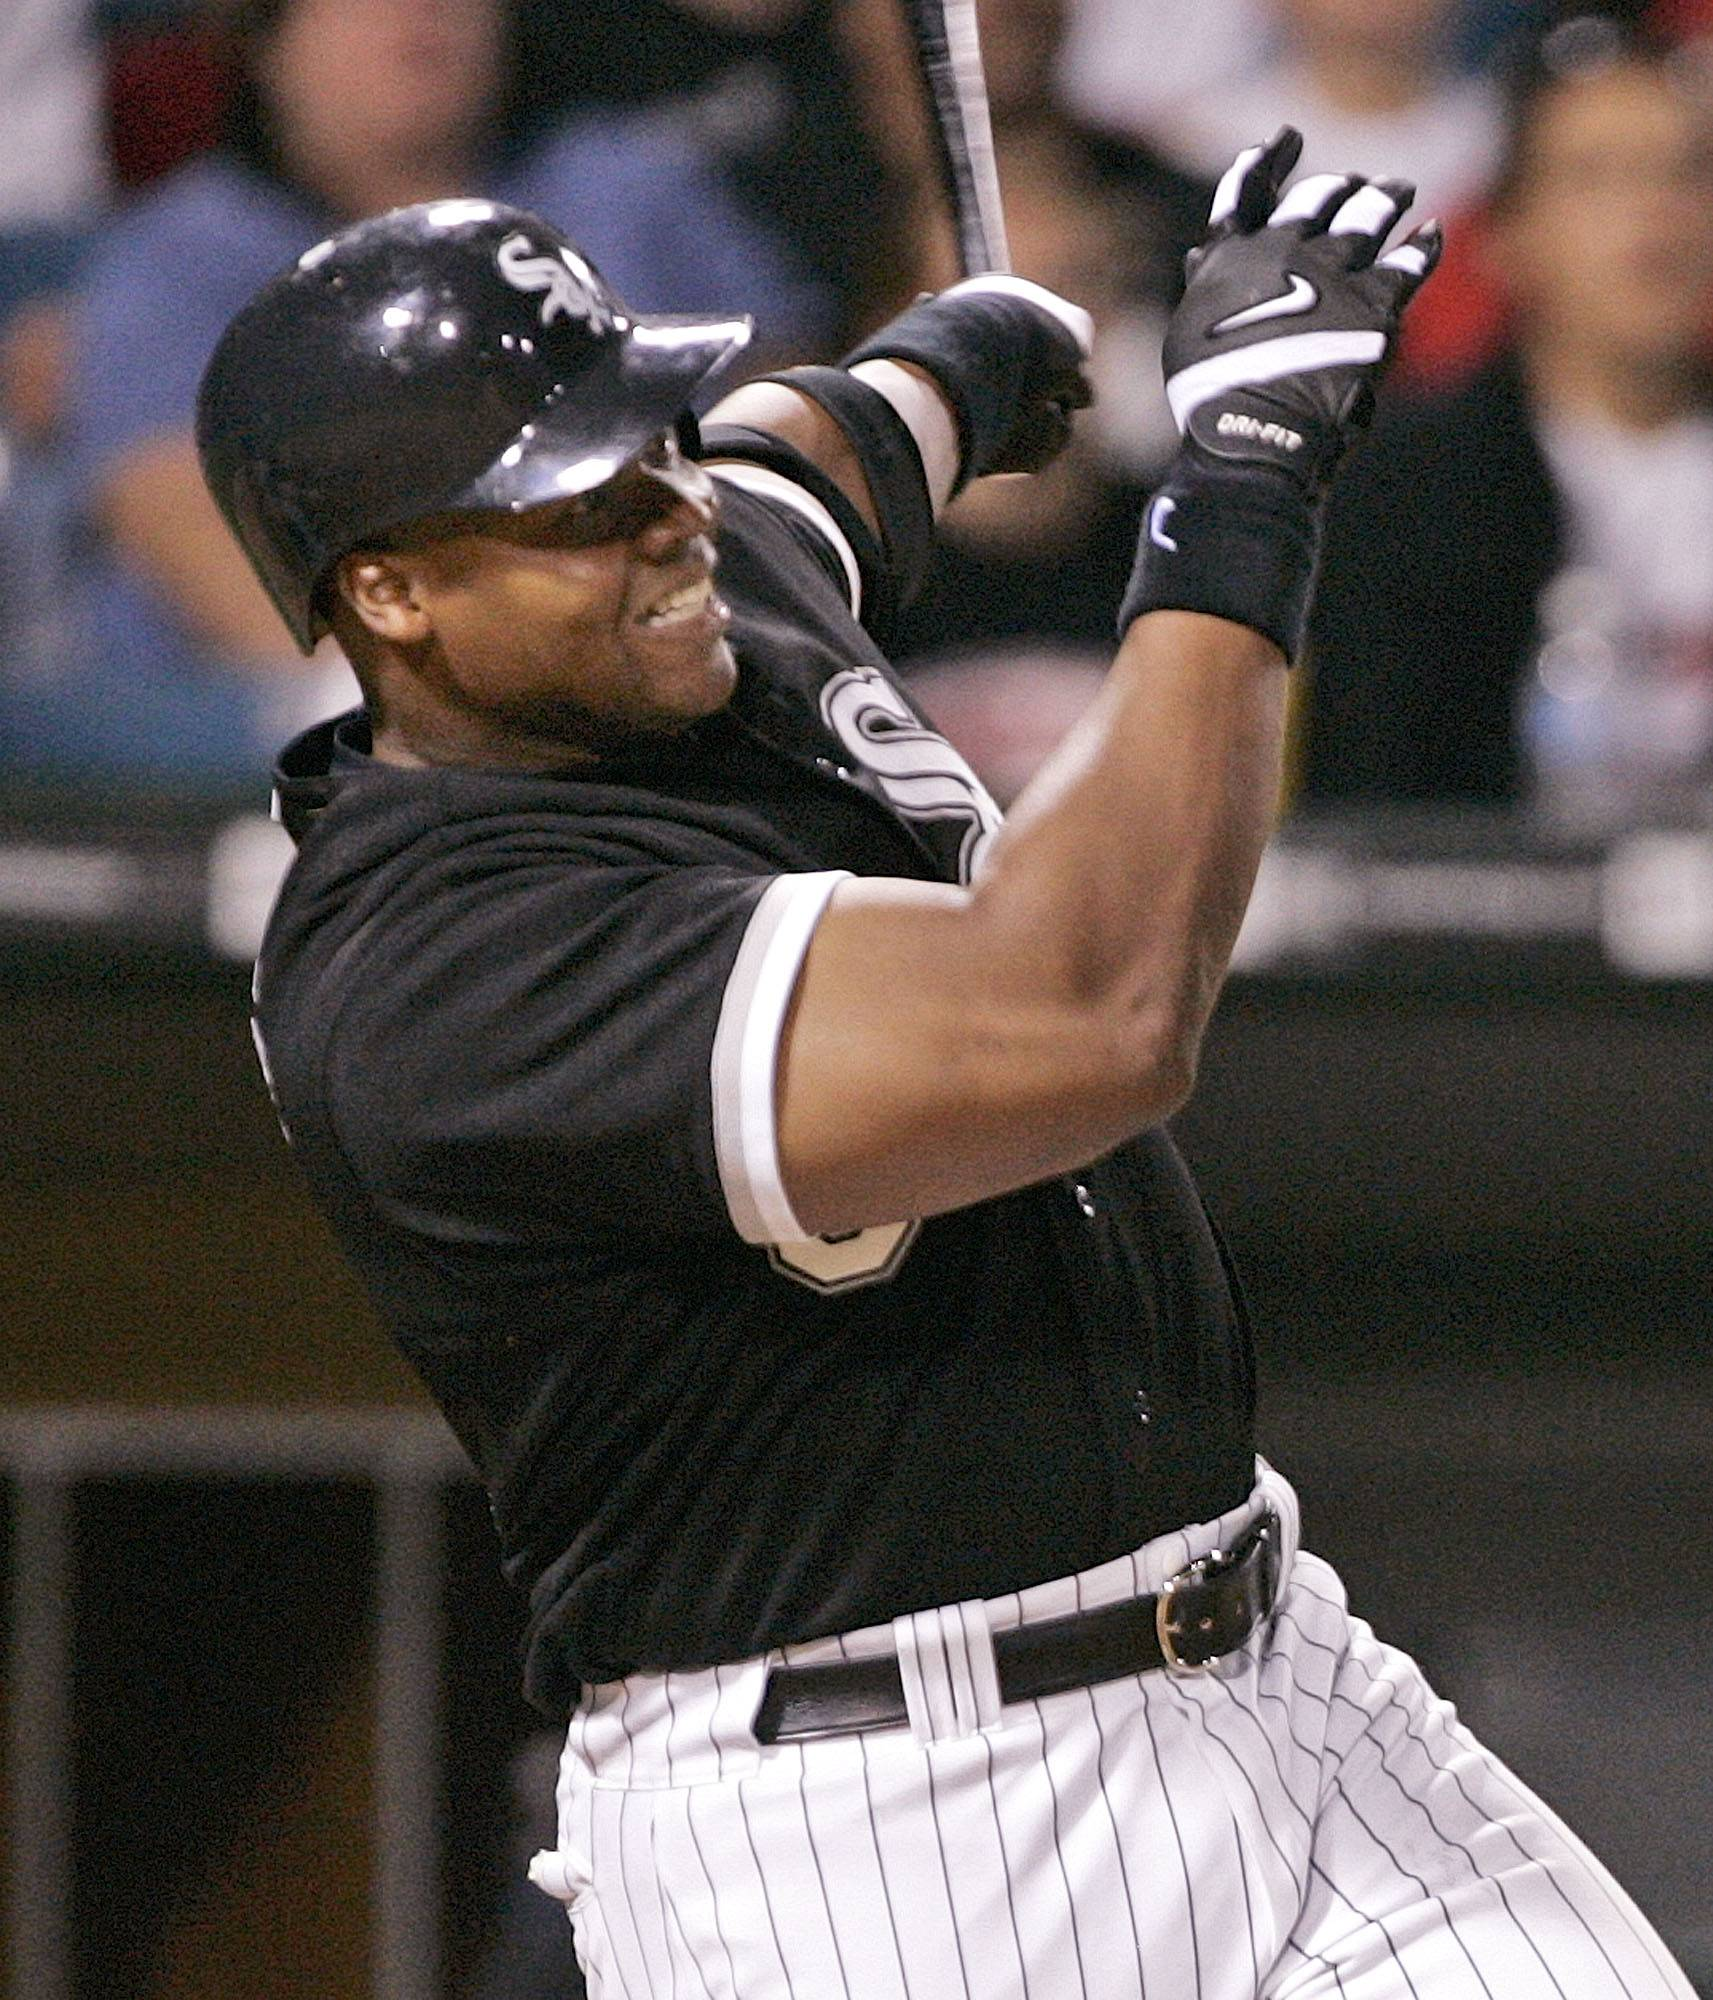 There was plenty of off-the-field drama when it came to Frank Thomas, but time has had a way of healing those wounds. When the Big Hurt enters the Hall of Fame on Sunday, White Sox fans will remember what he did for the team on the field as the franchise's best hitter ever.